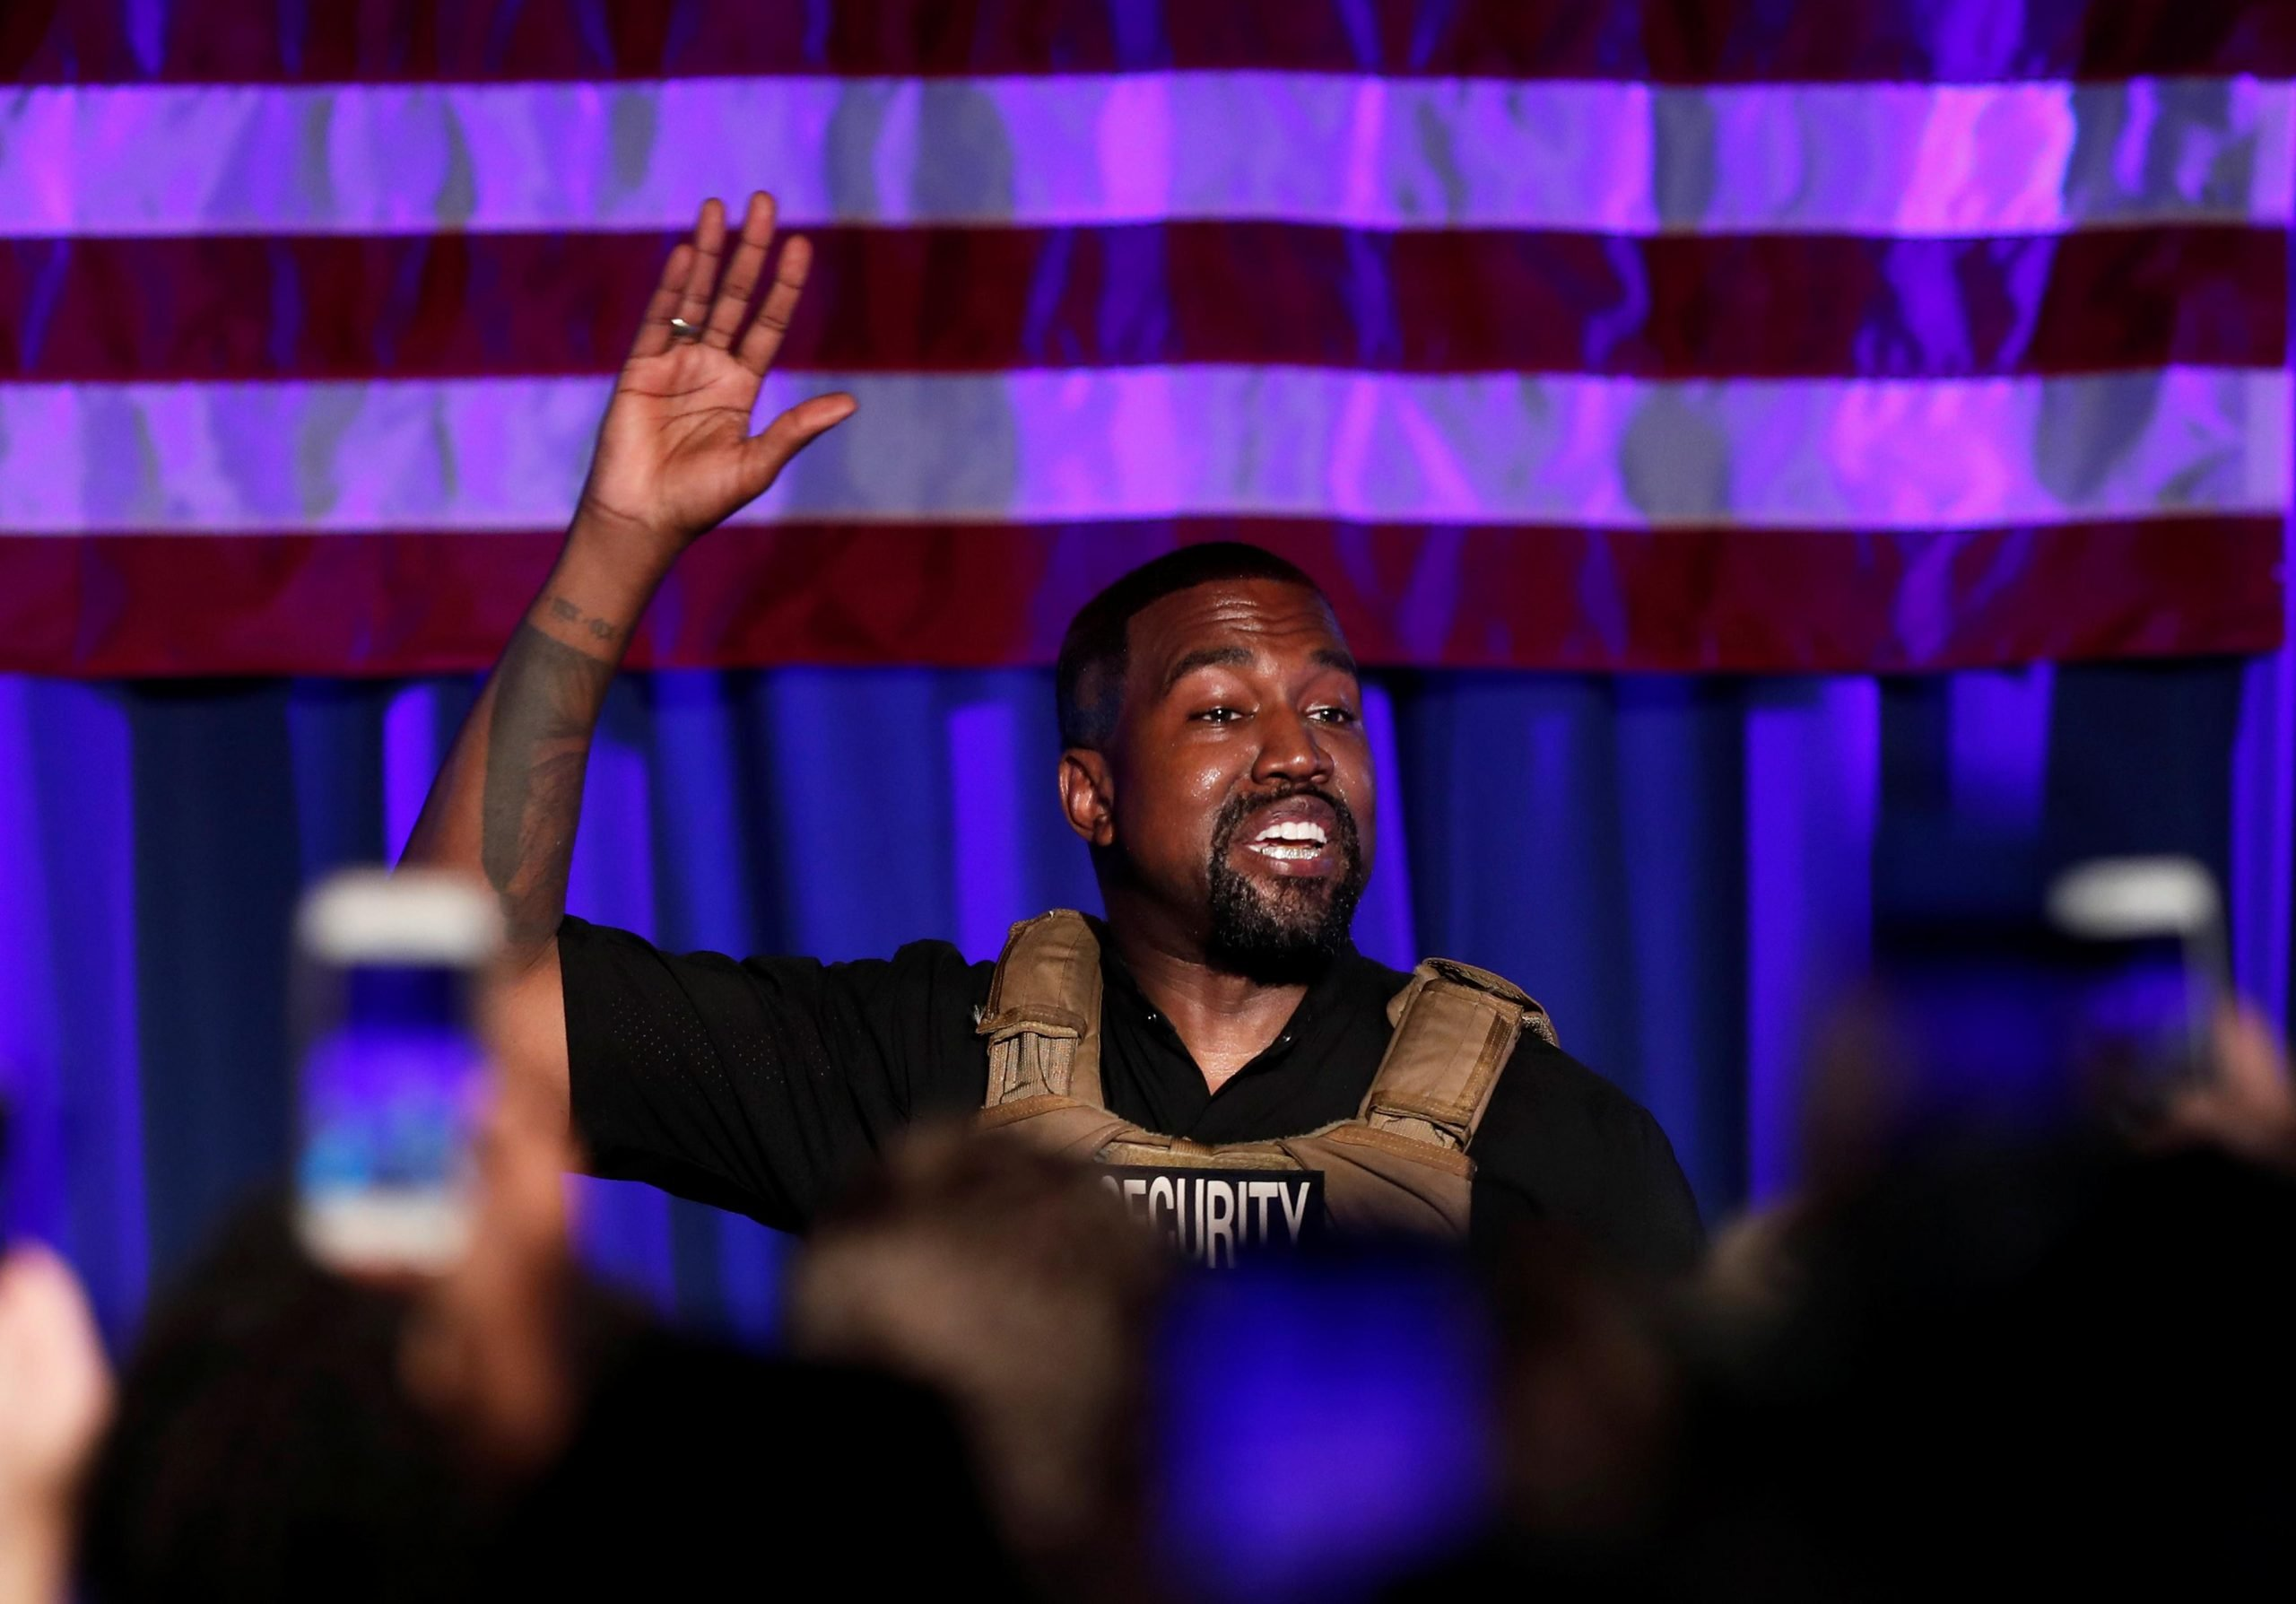 Kanye West Attempts to Trademark Phrase 'God Save America' for Presidential Campaign